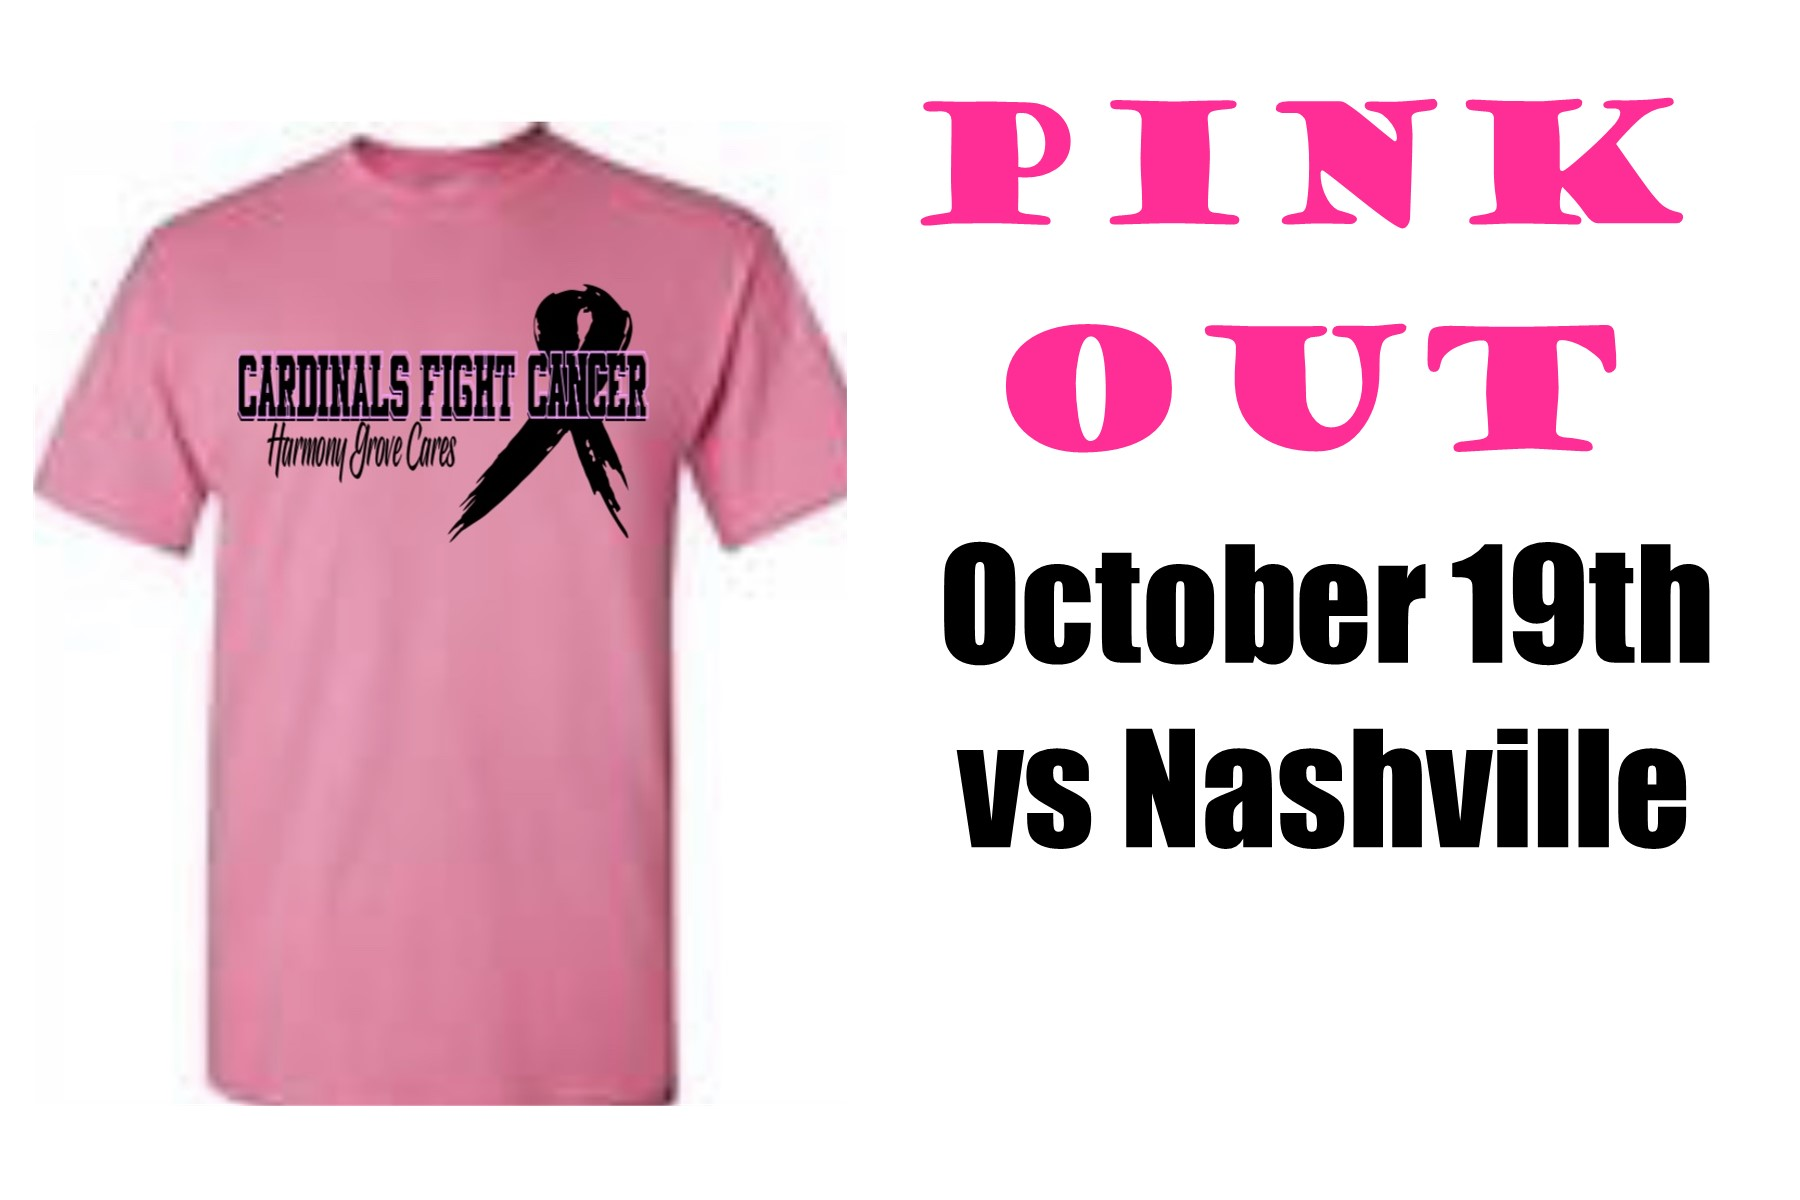 Pink Out October 19th